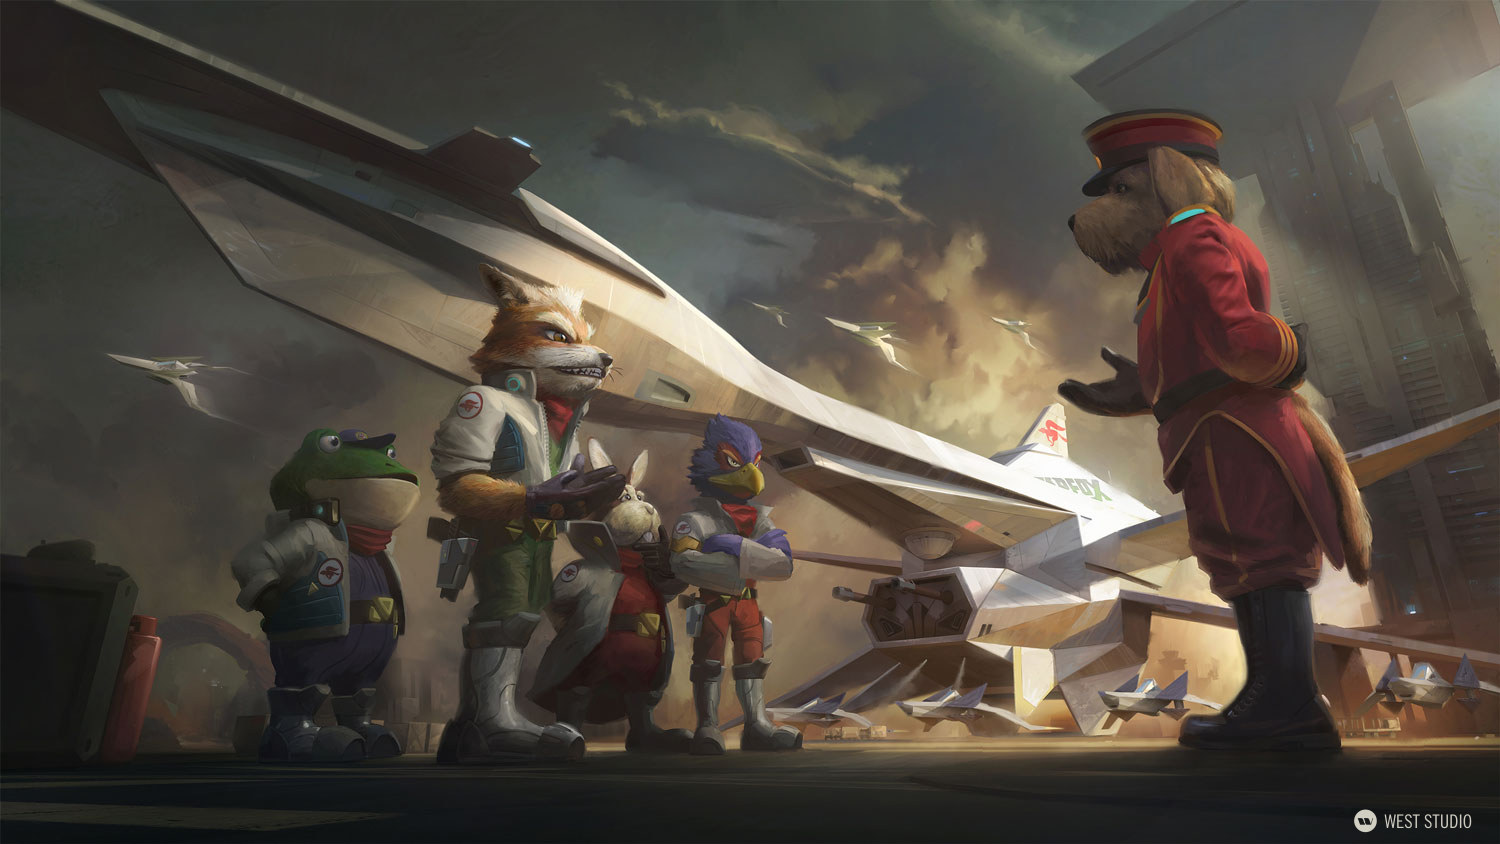 Star Fox, Nintendo, airship, scale, fantasy, sci-fi